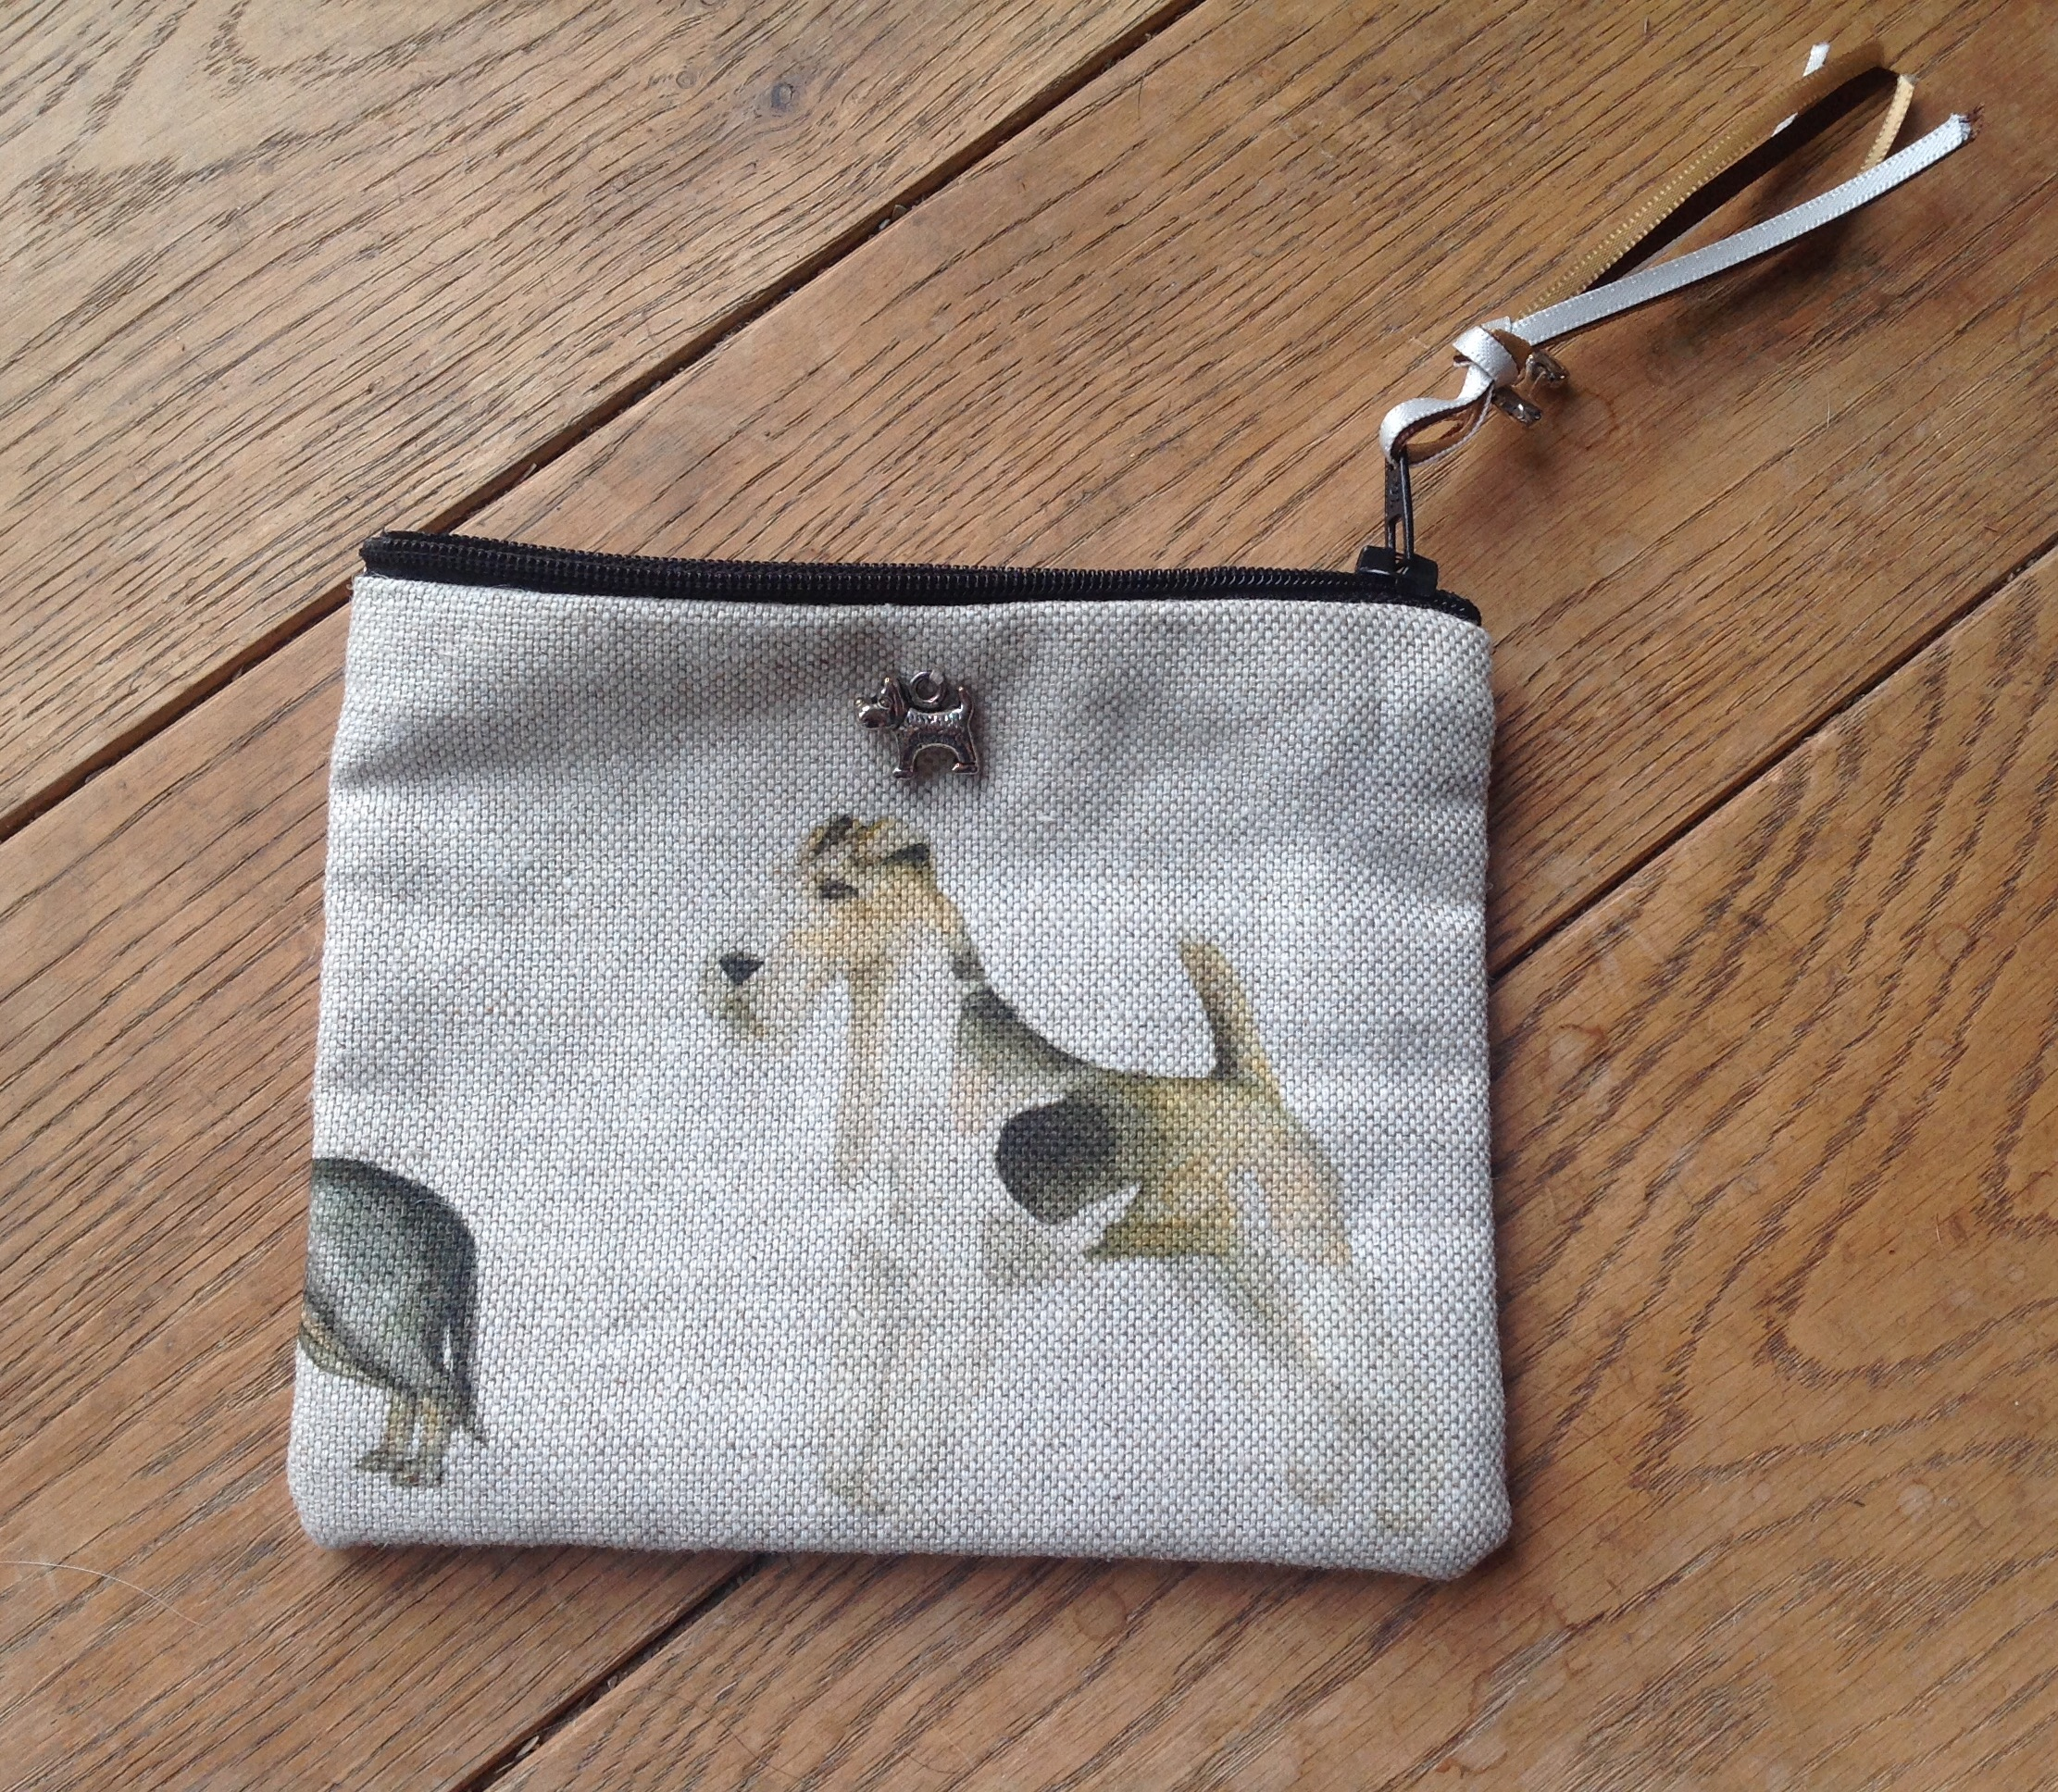 Coin purse - Voyage Walkies design